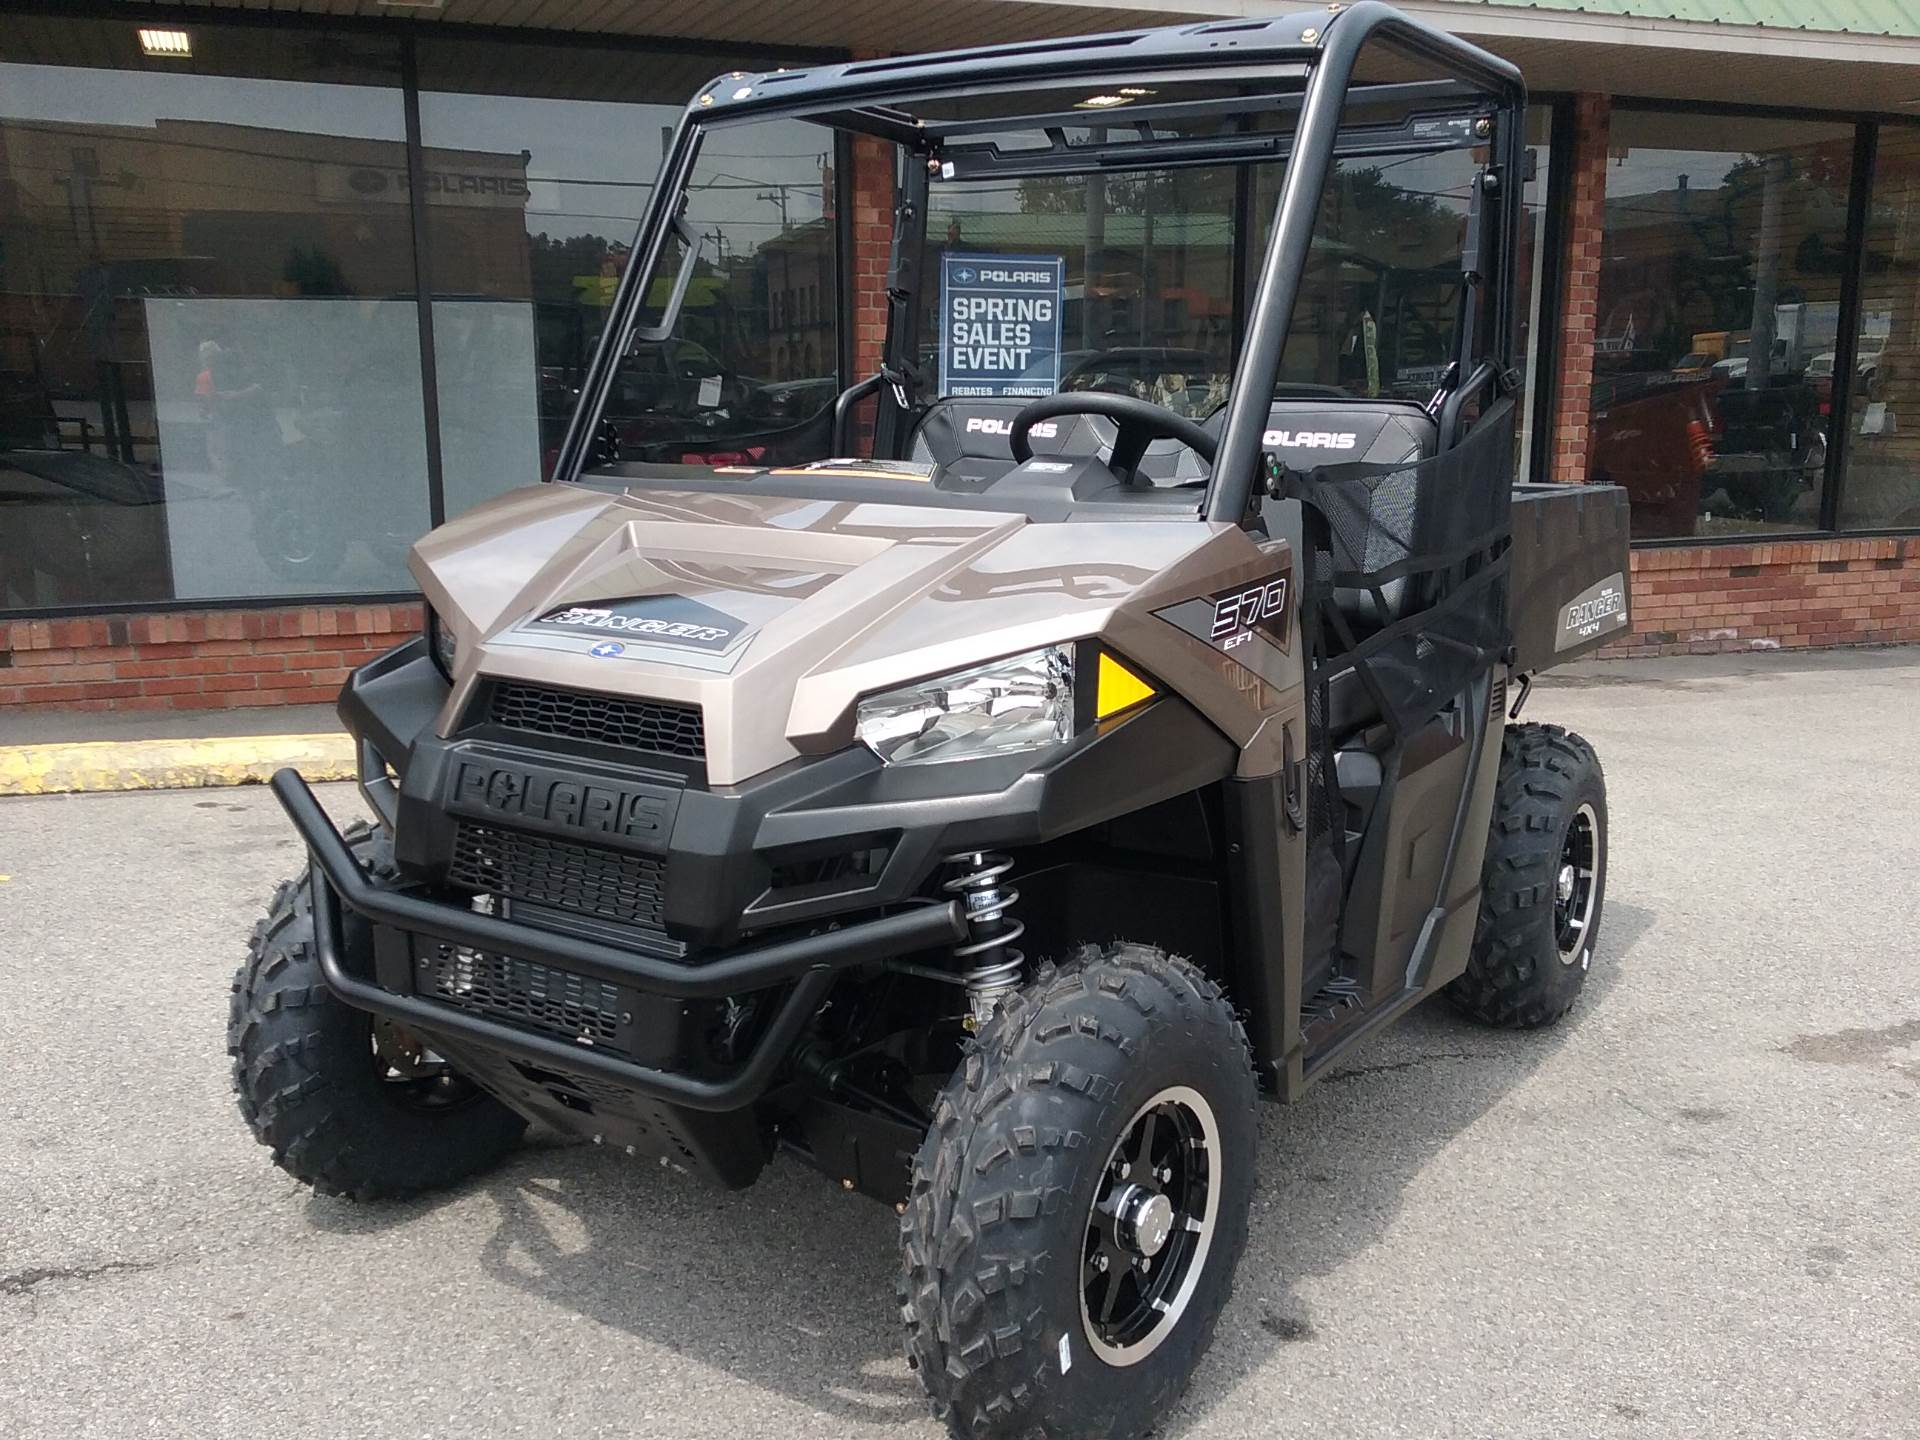 2019 polaris ranger 570 eps utility vehicles beaver falls. Black Bedroom Furniture Sets. Home Design Ideas